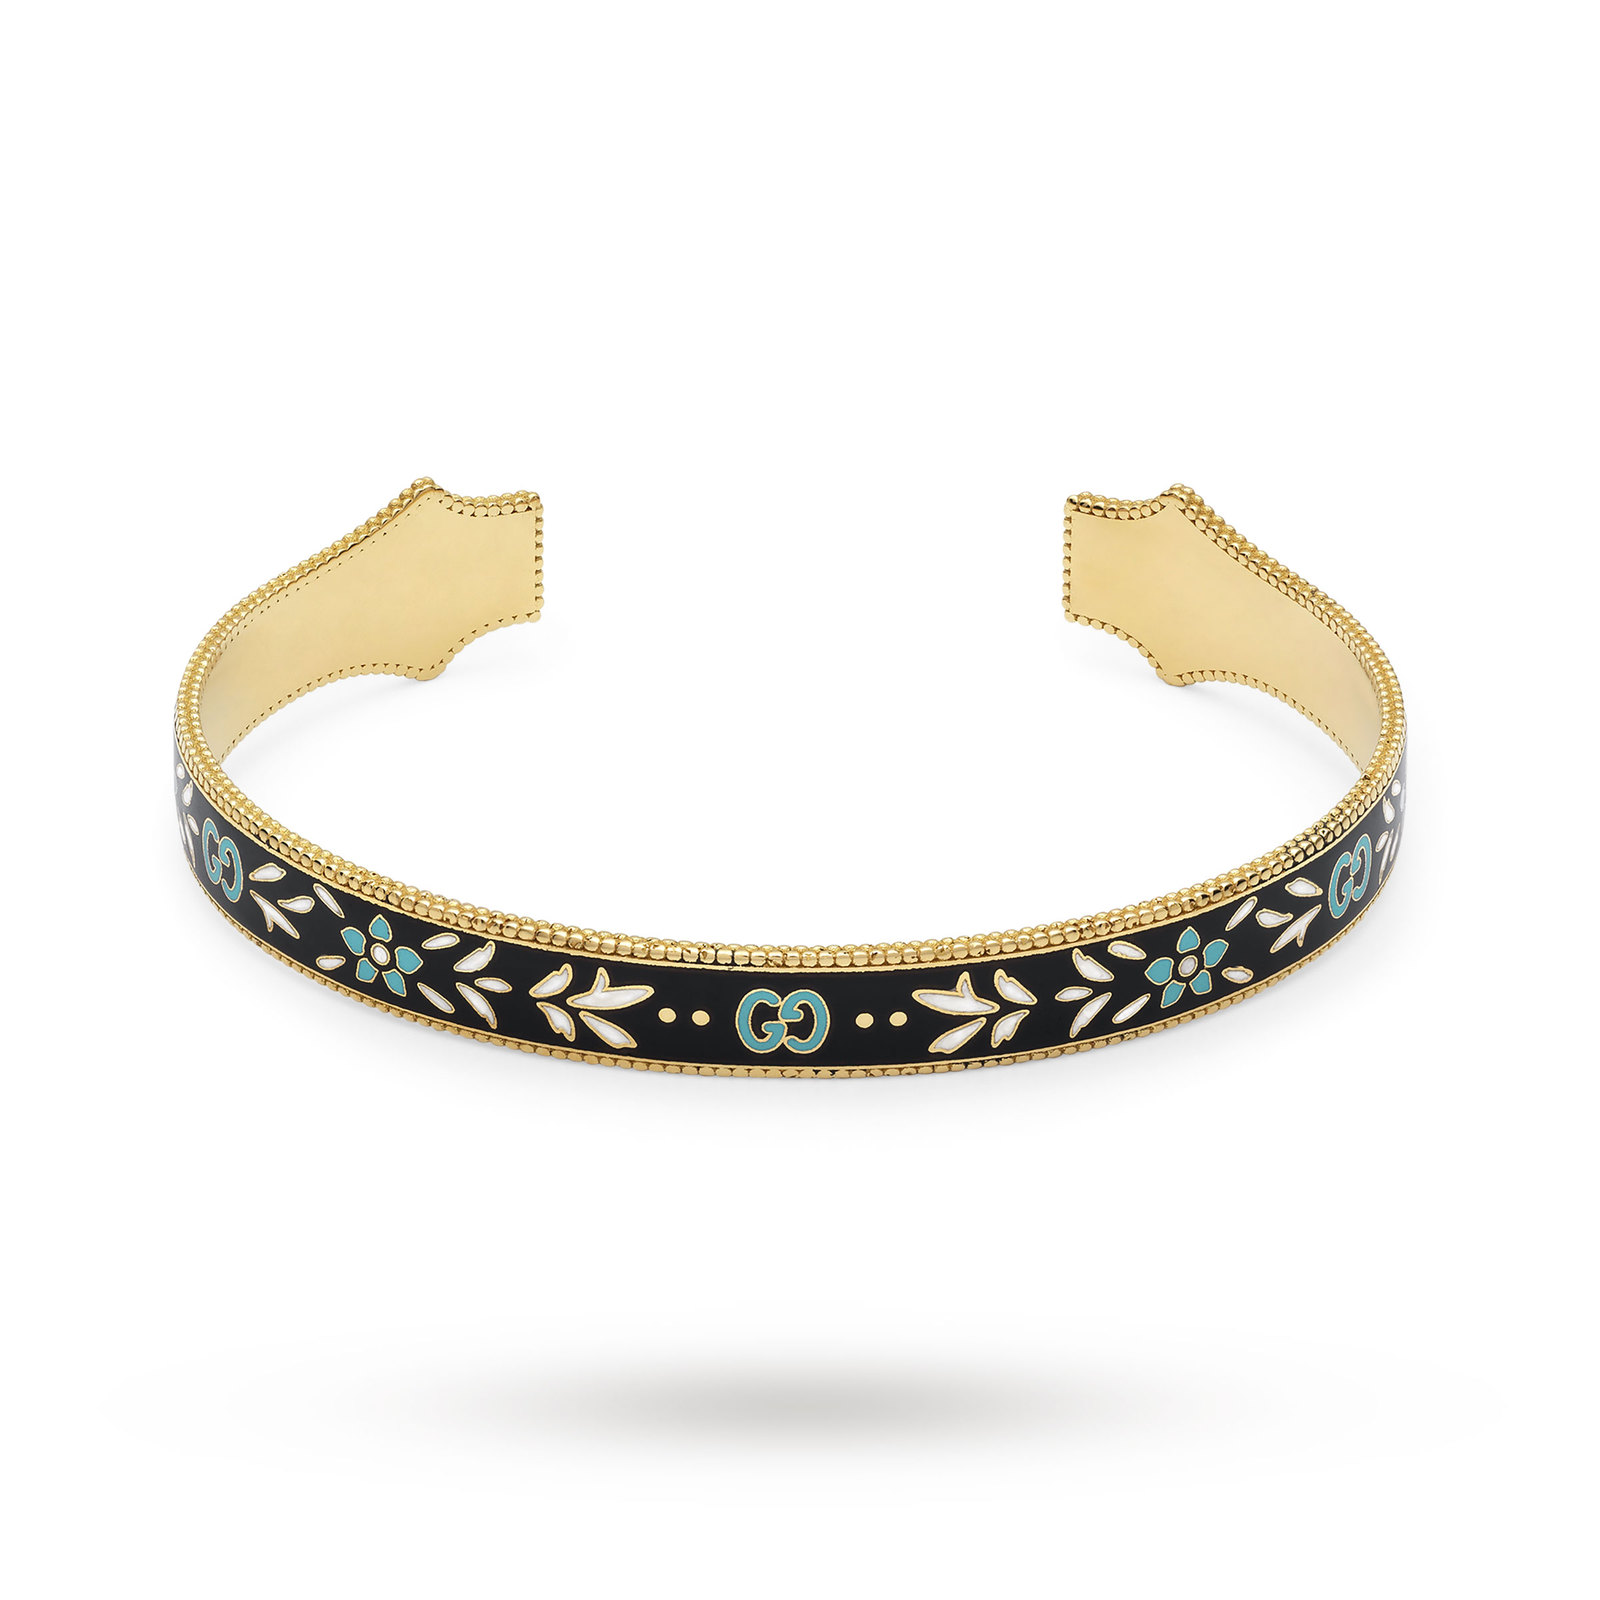 d0b0d2ac4b2 Gucci Icon Bracelet in 18ct Yellow Gold with Enamel